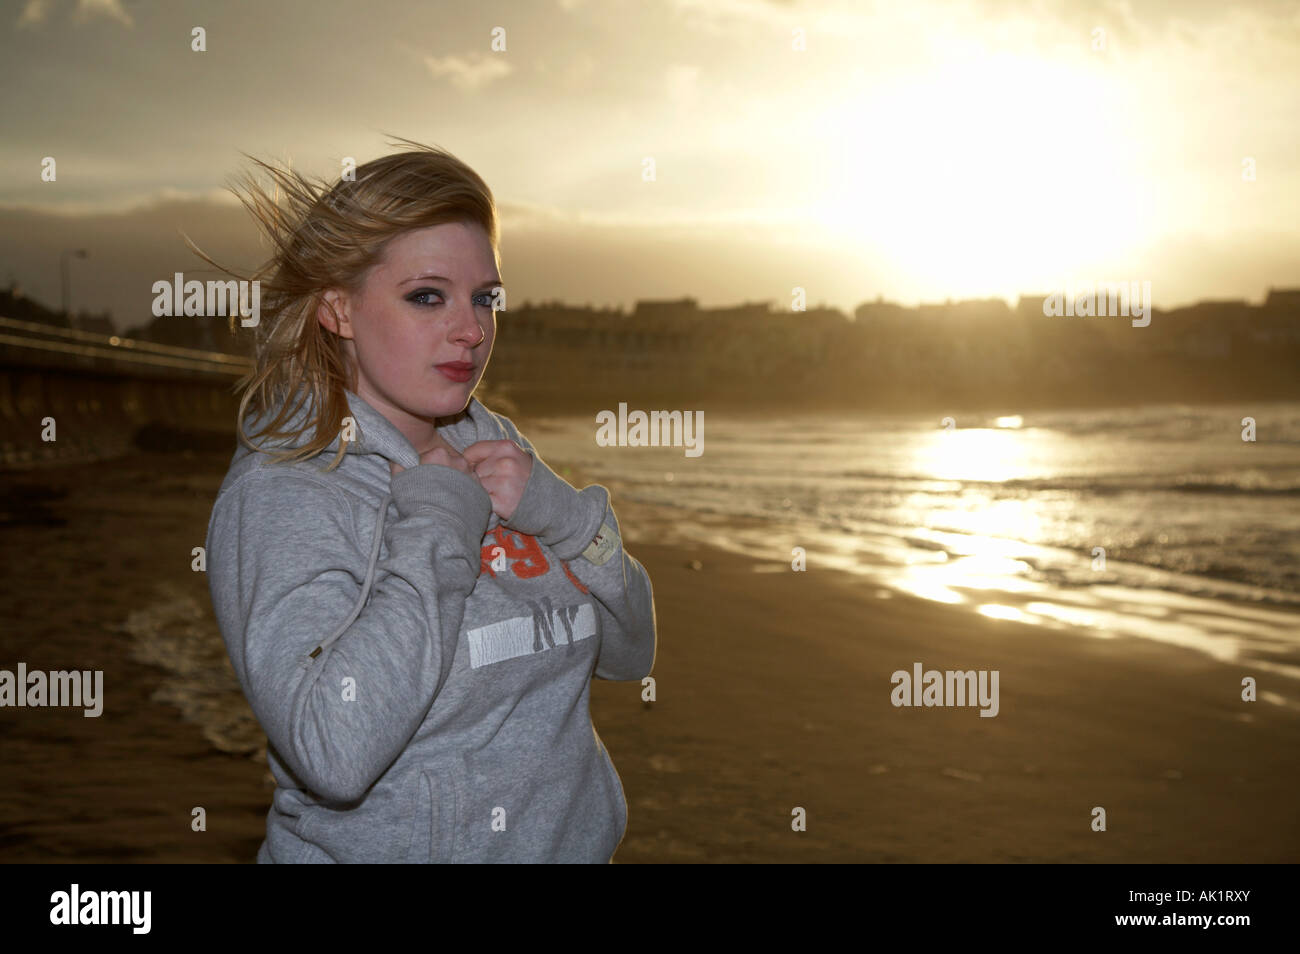 blonde haired female student with tears in her eyes standing on a beach at sunset wearing a sweatshirt holding it - Stock Image